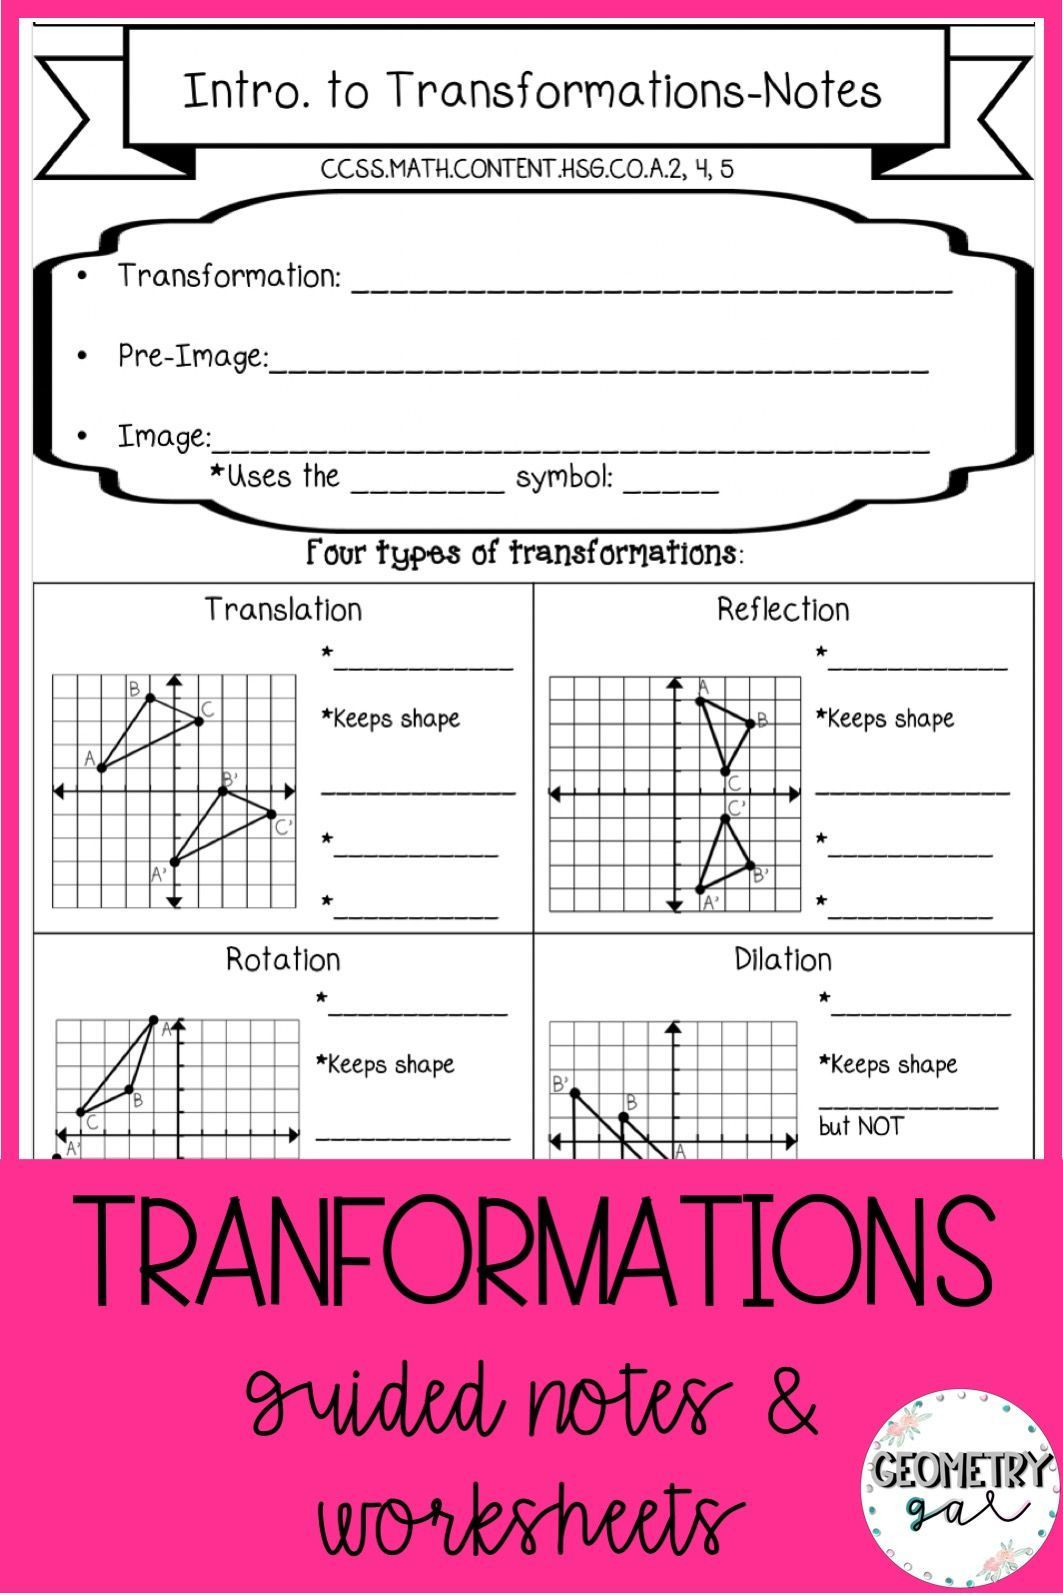 Translation Math Worksheet Pdf Geometry Transformations Guided Notes and Worksheets topics